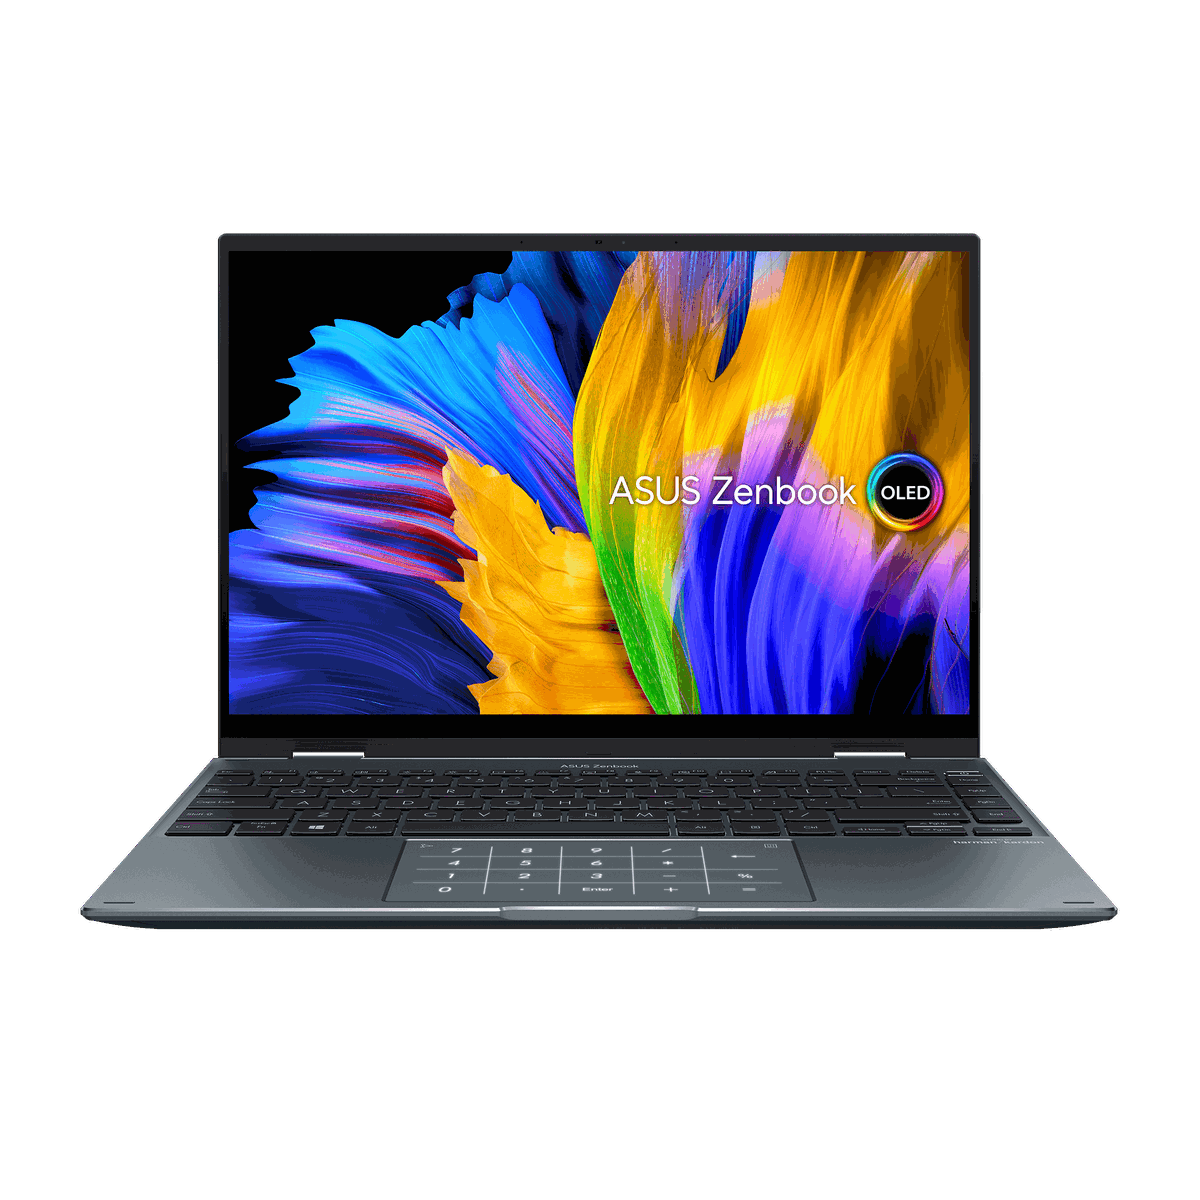 The Asus Zenbook Flip 14 OLED open facing the camera with the number pad illuminated. The screen displays a multicolored flower background with the Asus Zenbook OLED logo on the right side.